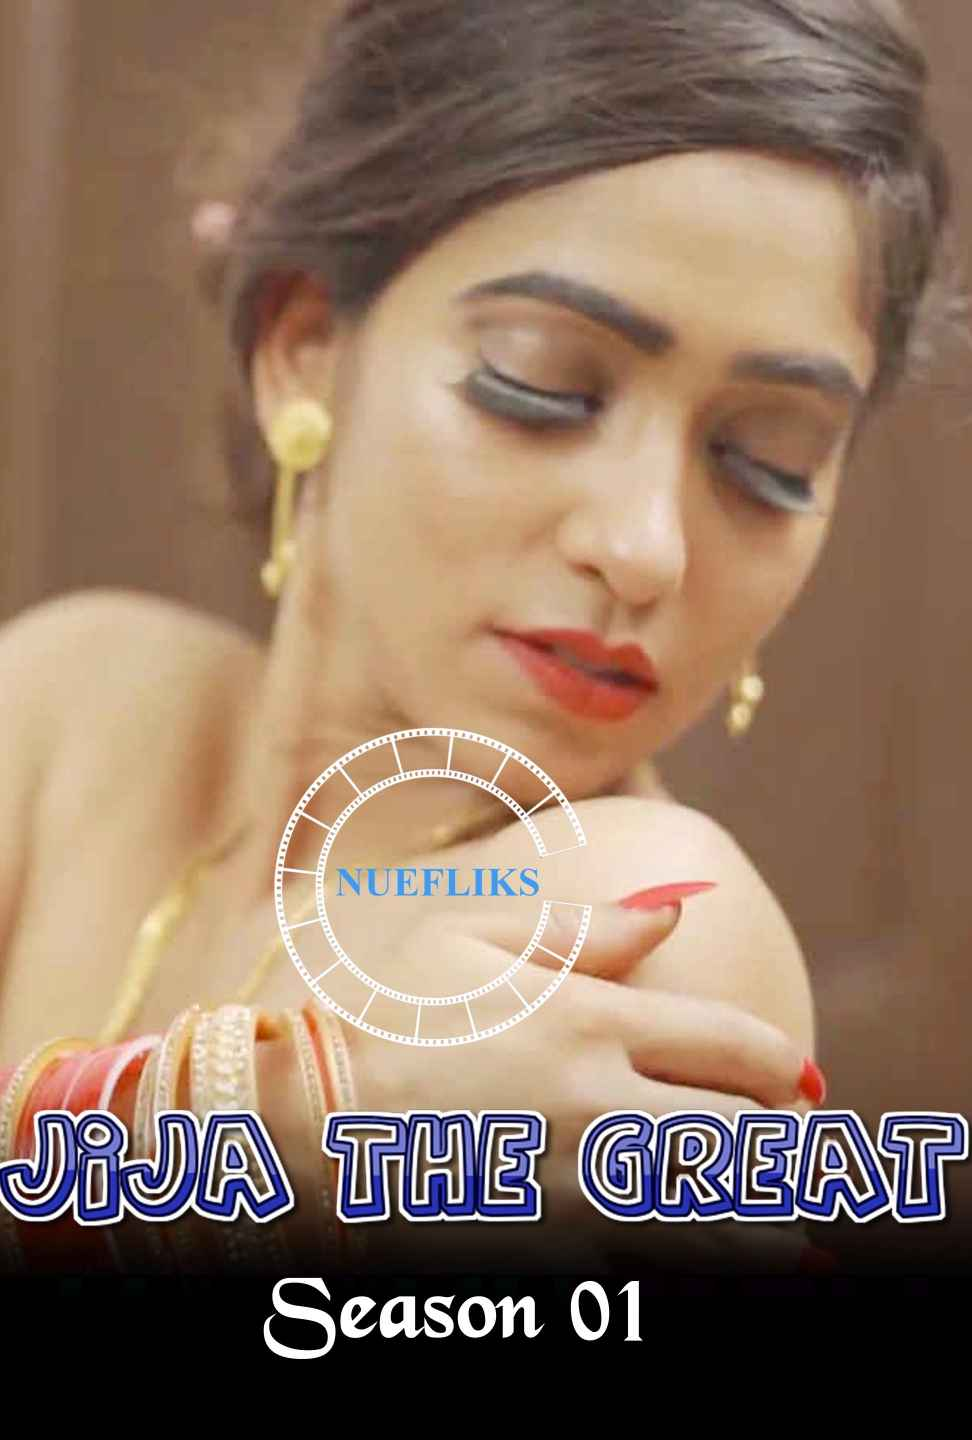 Jija The Great 2020 S01E02 Nuefliks Original Punjabi Web Series 720p HDRip 190MB Free Download